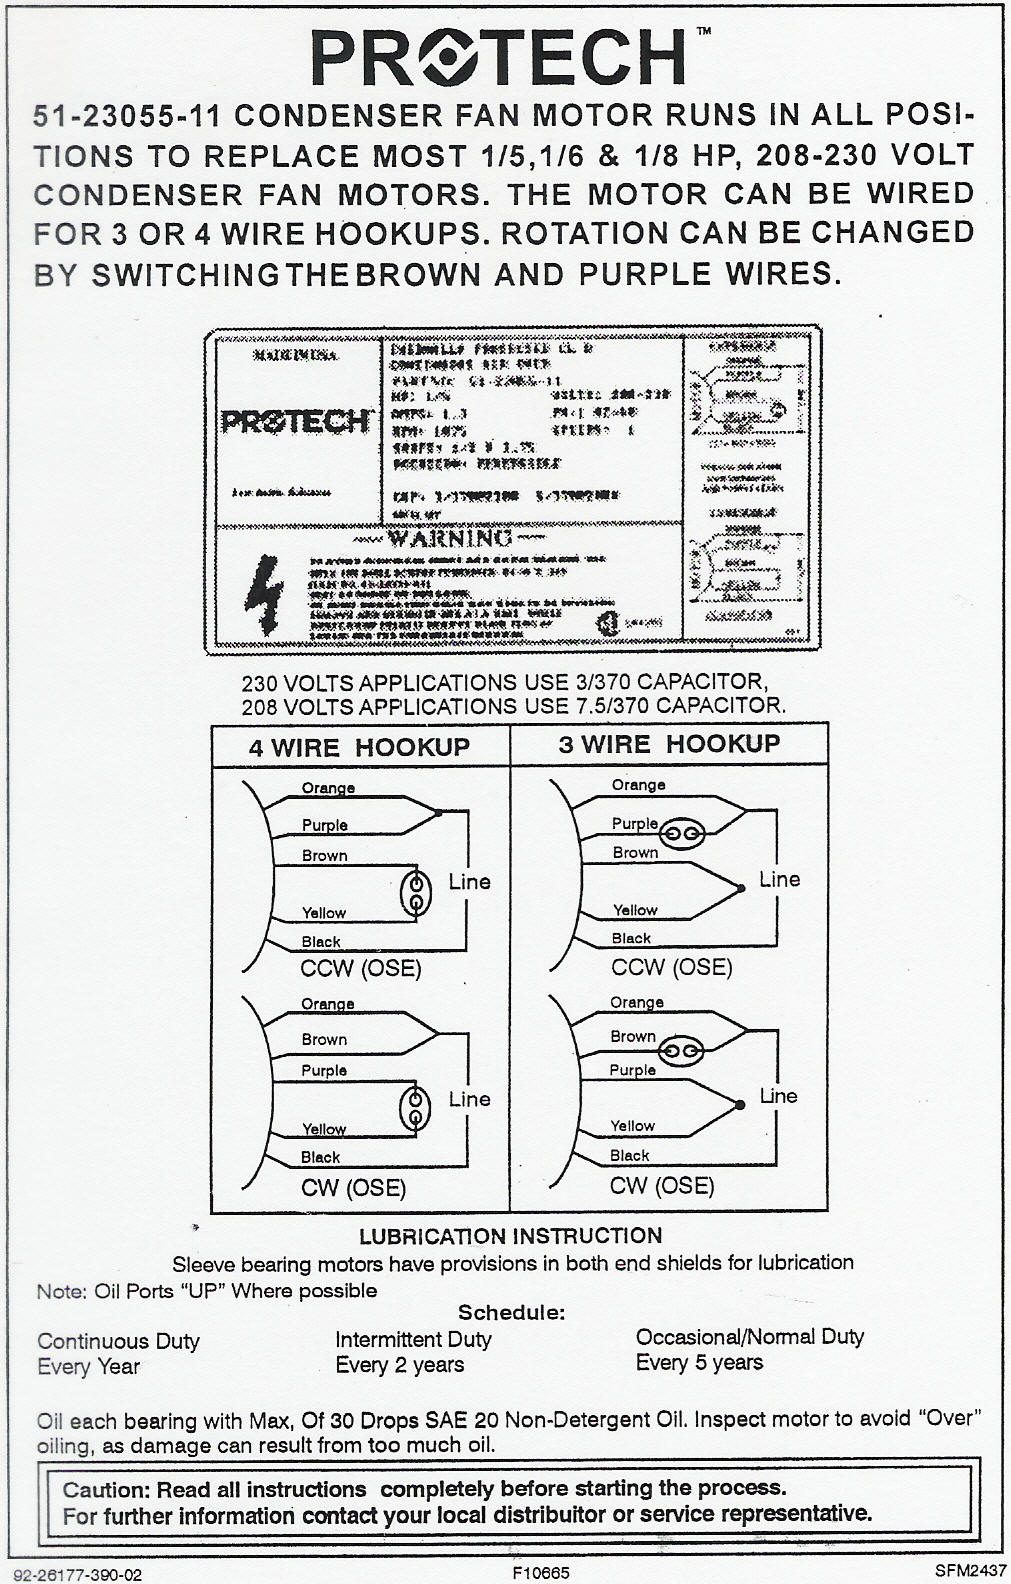 51 23055 11 wiring diagram rheem ruud condenser fan motor 51 23055 11 wiring diagram rheem electric furnace wiring diagram at soozxer.org